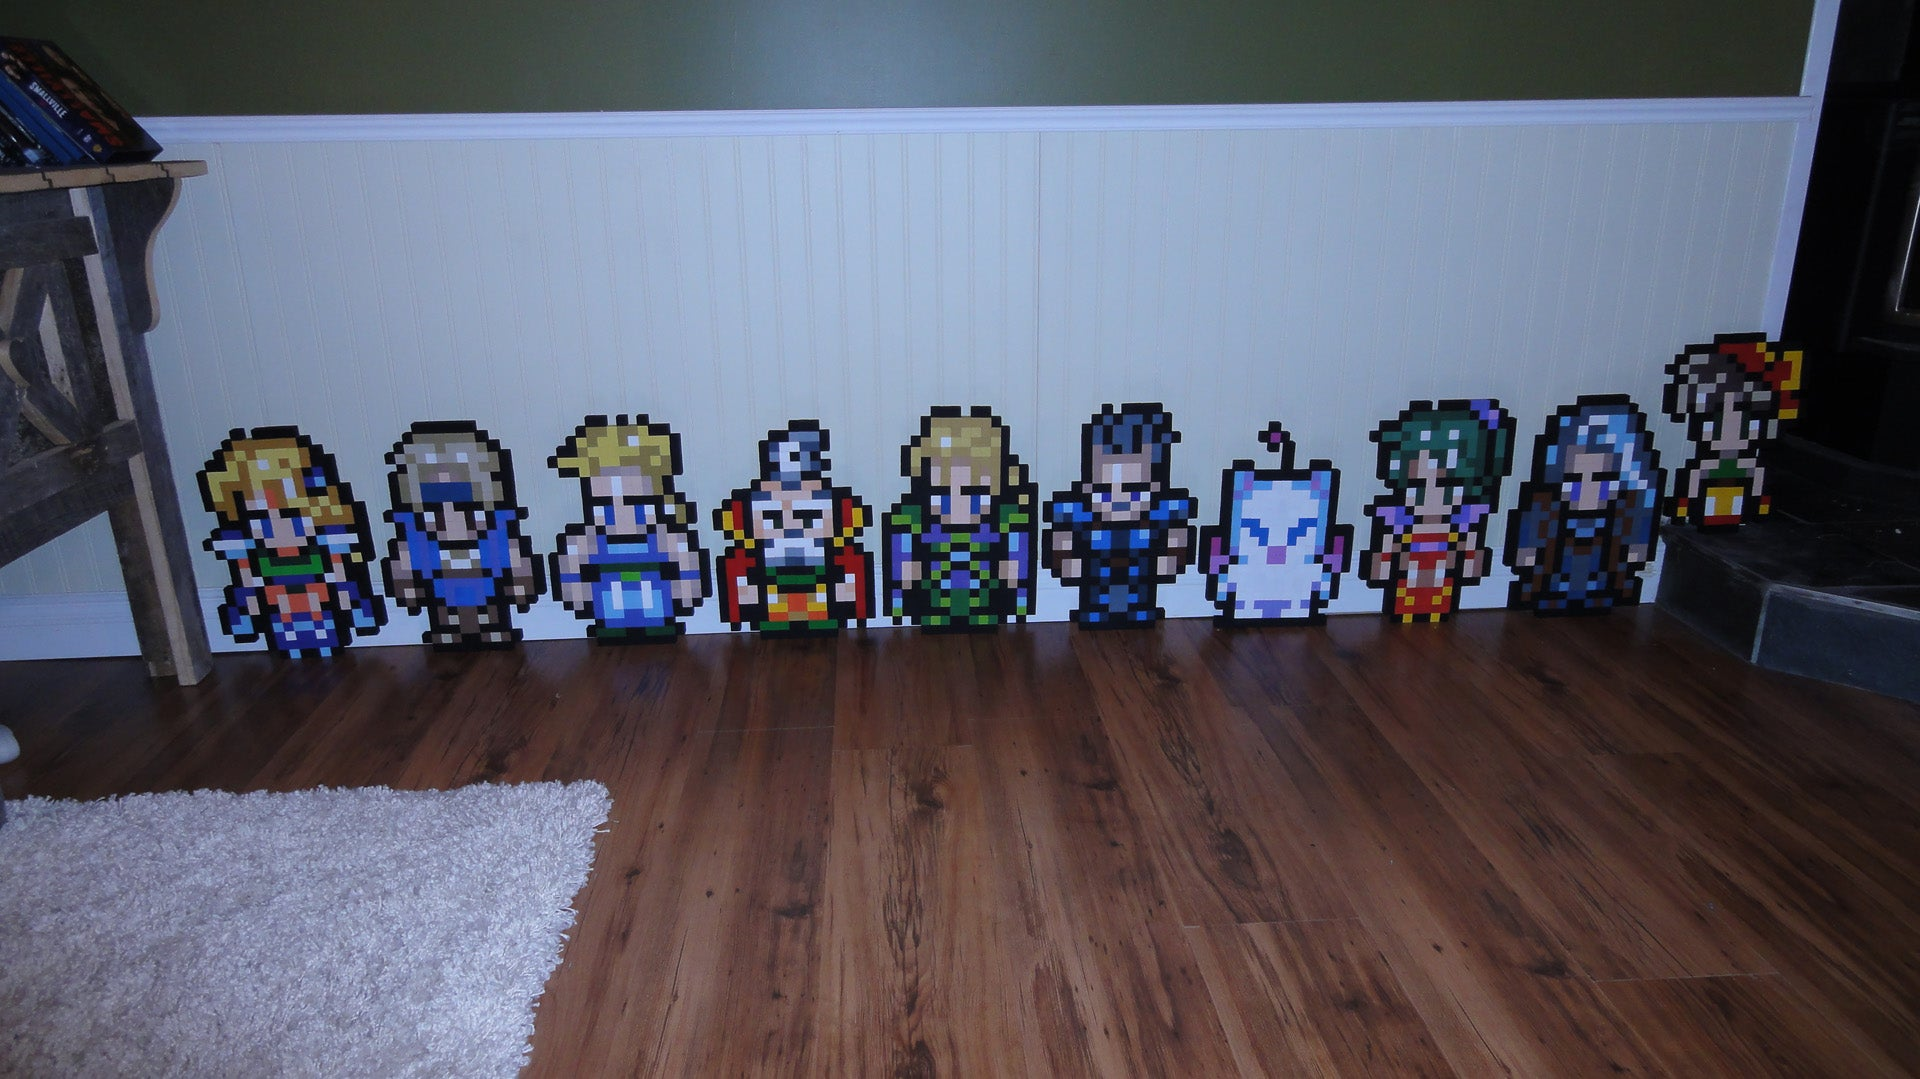 If You've Got the Wood, Money and Time You Too Could Fill Your Home with RPG Heroes